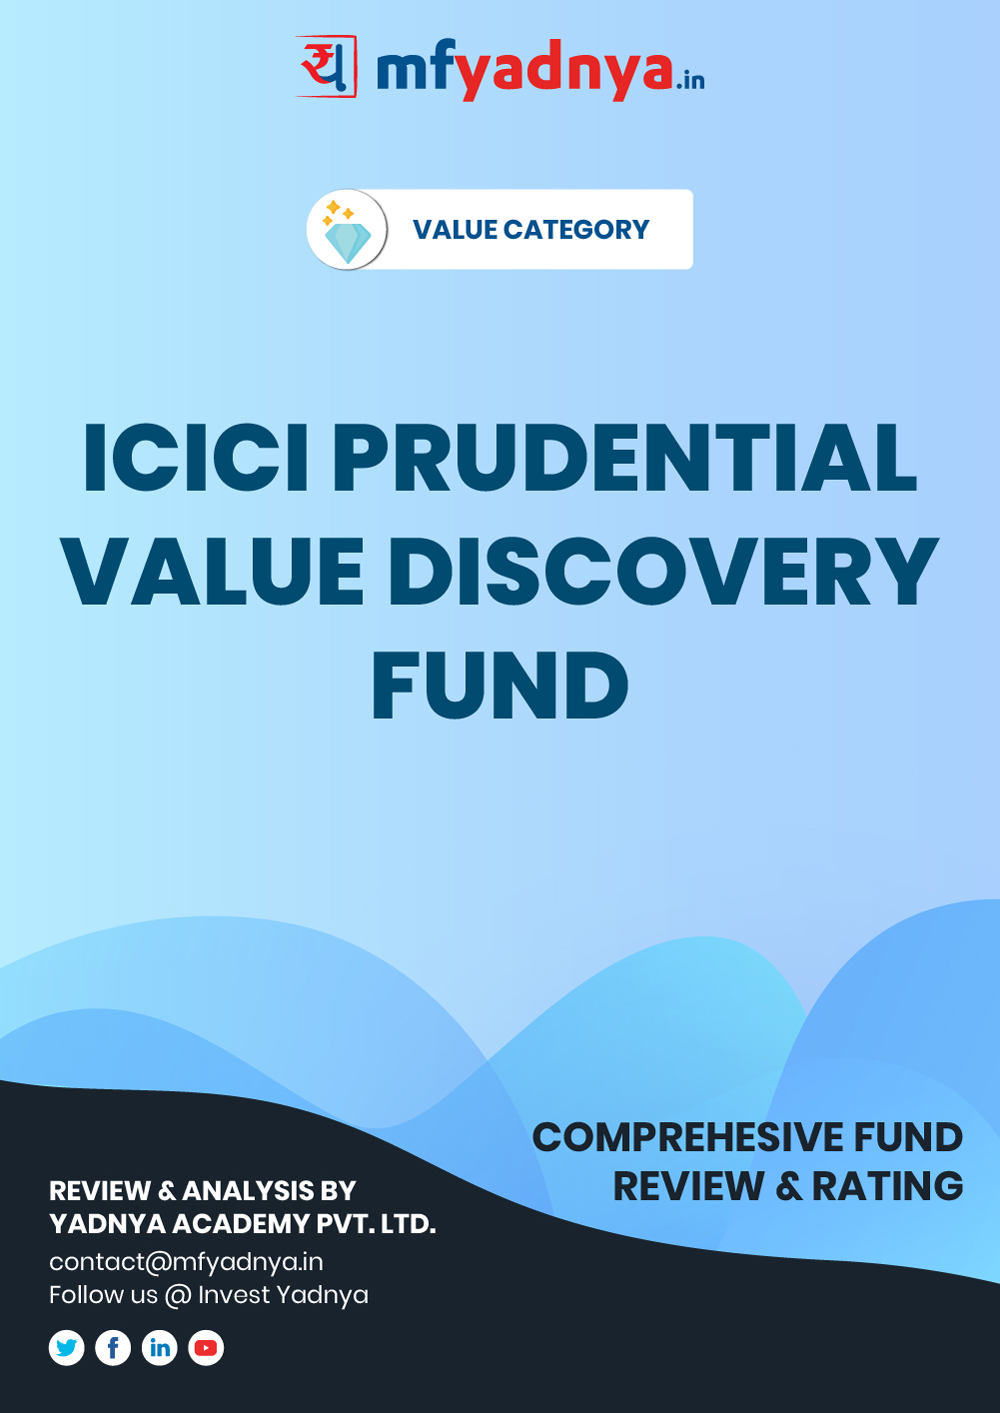 Value or Contra Category Review - ICICI Prudential Value Discovery Fund. Most Comprehensive and detailed MF review based on Yadnya's proprietary methodology of Green, Yellow & Red Star. Detailed Analysis & Review based on Sept 30th, 2019 data.